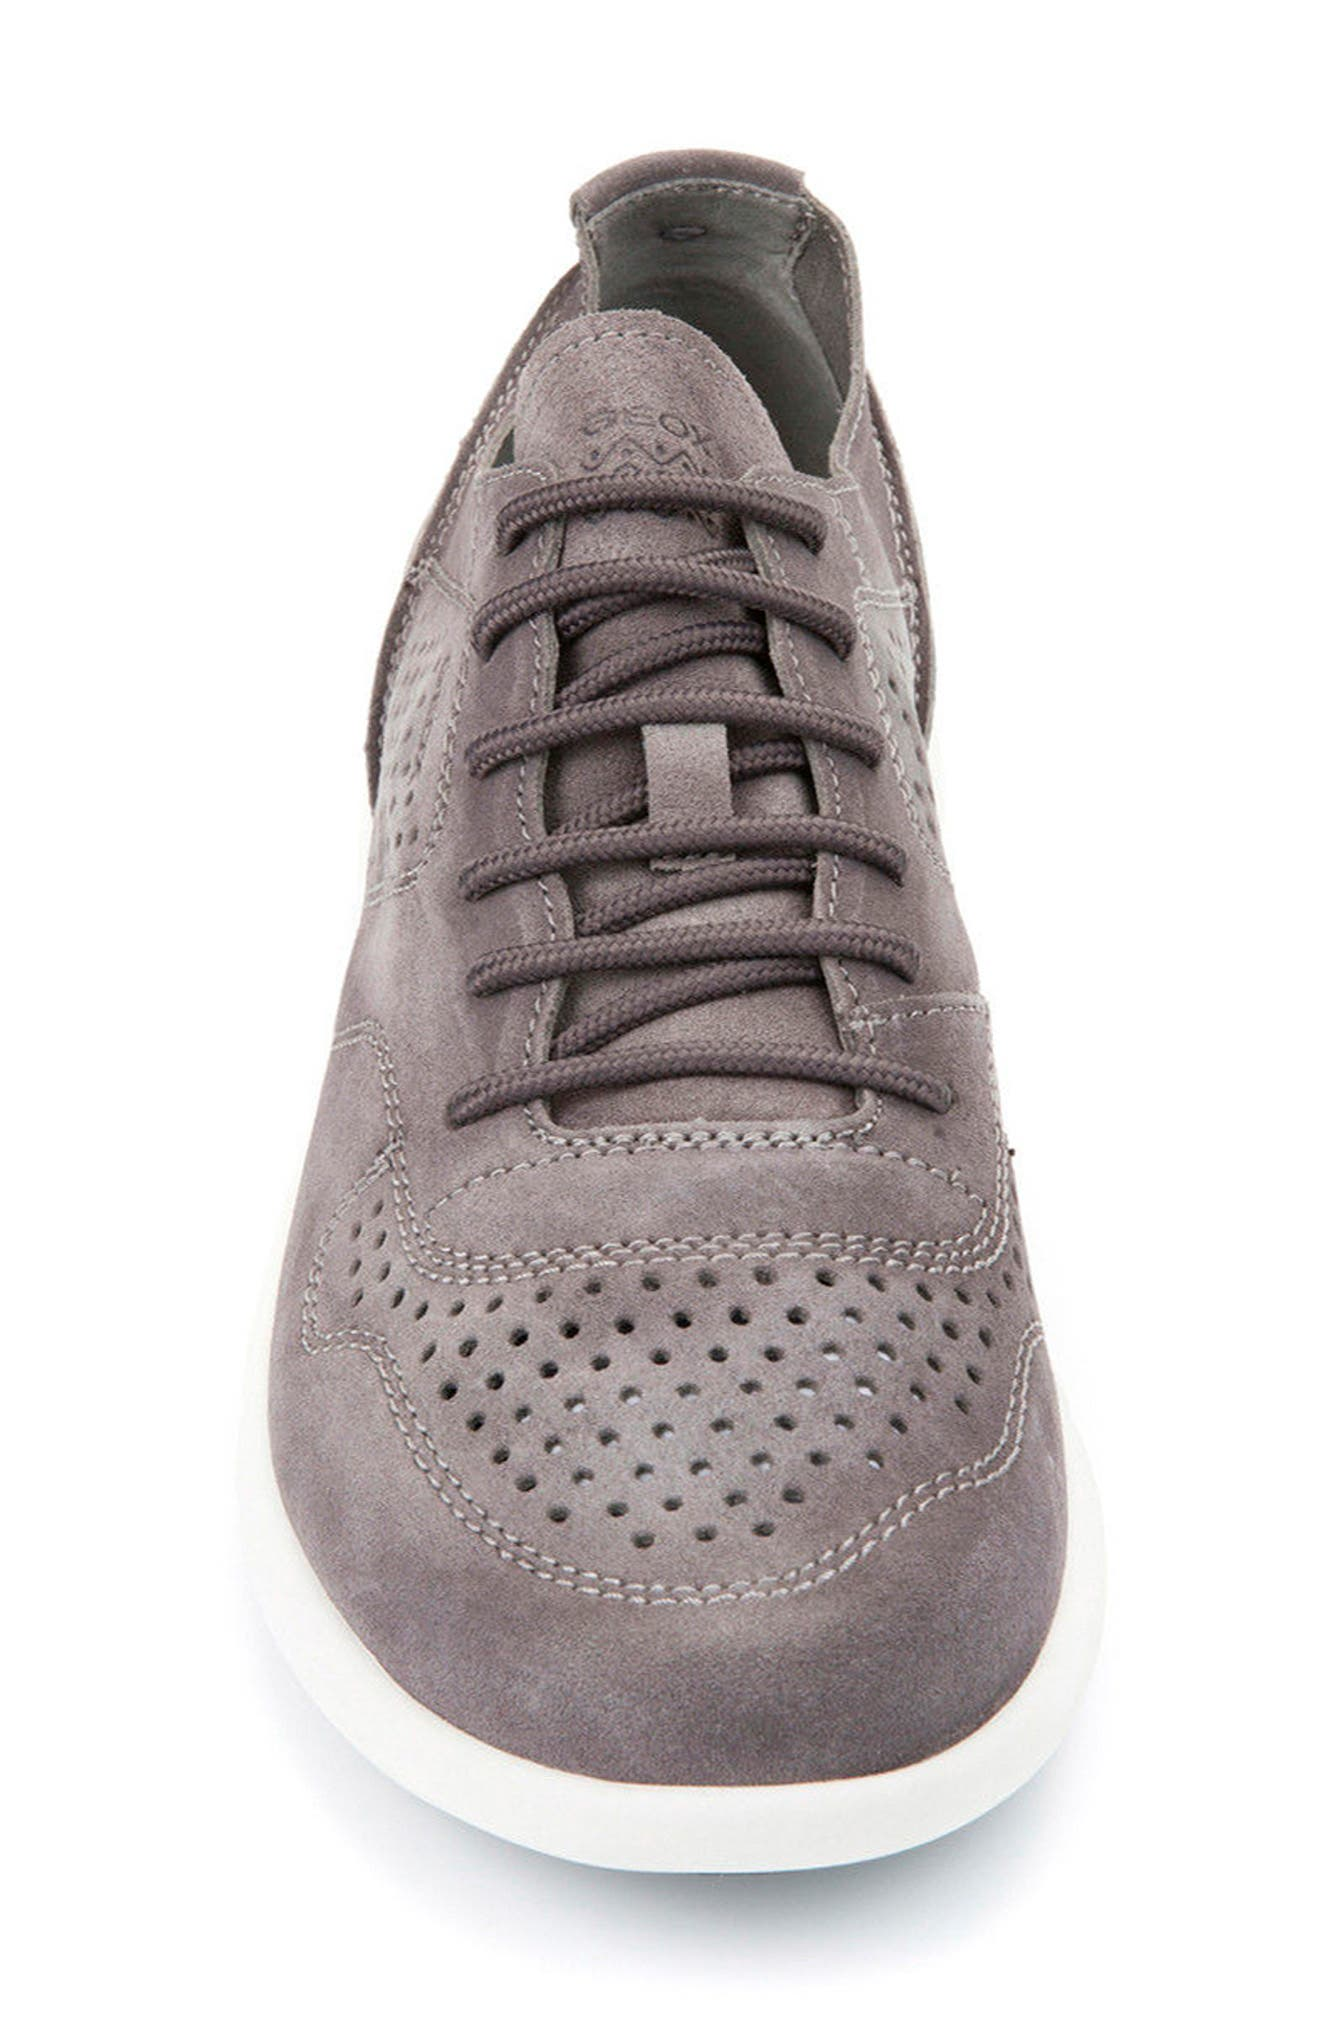 Brattley 2 Perforated Sneaker,                             Alternate thumbnail 4, color,                             020